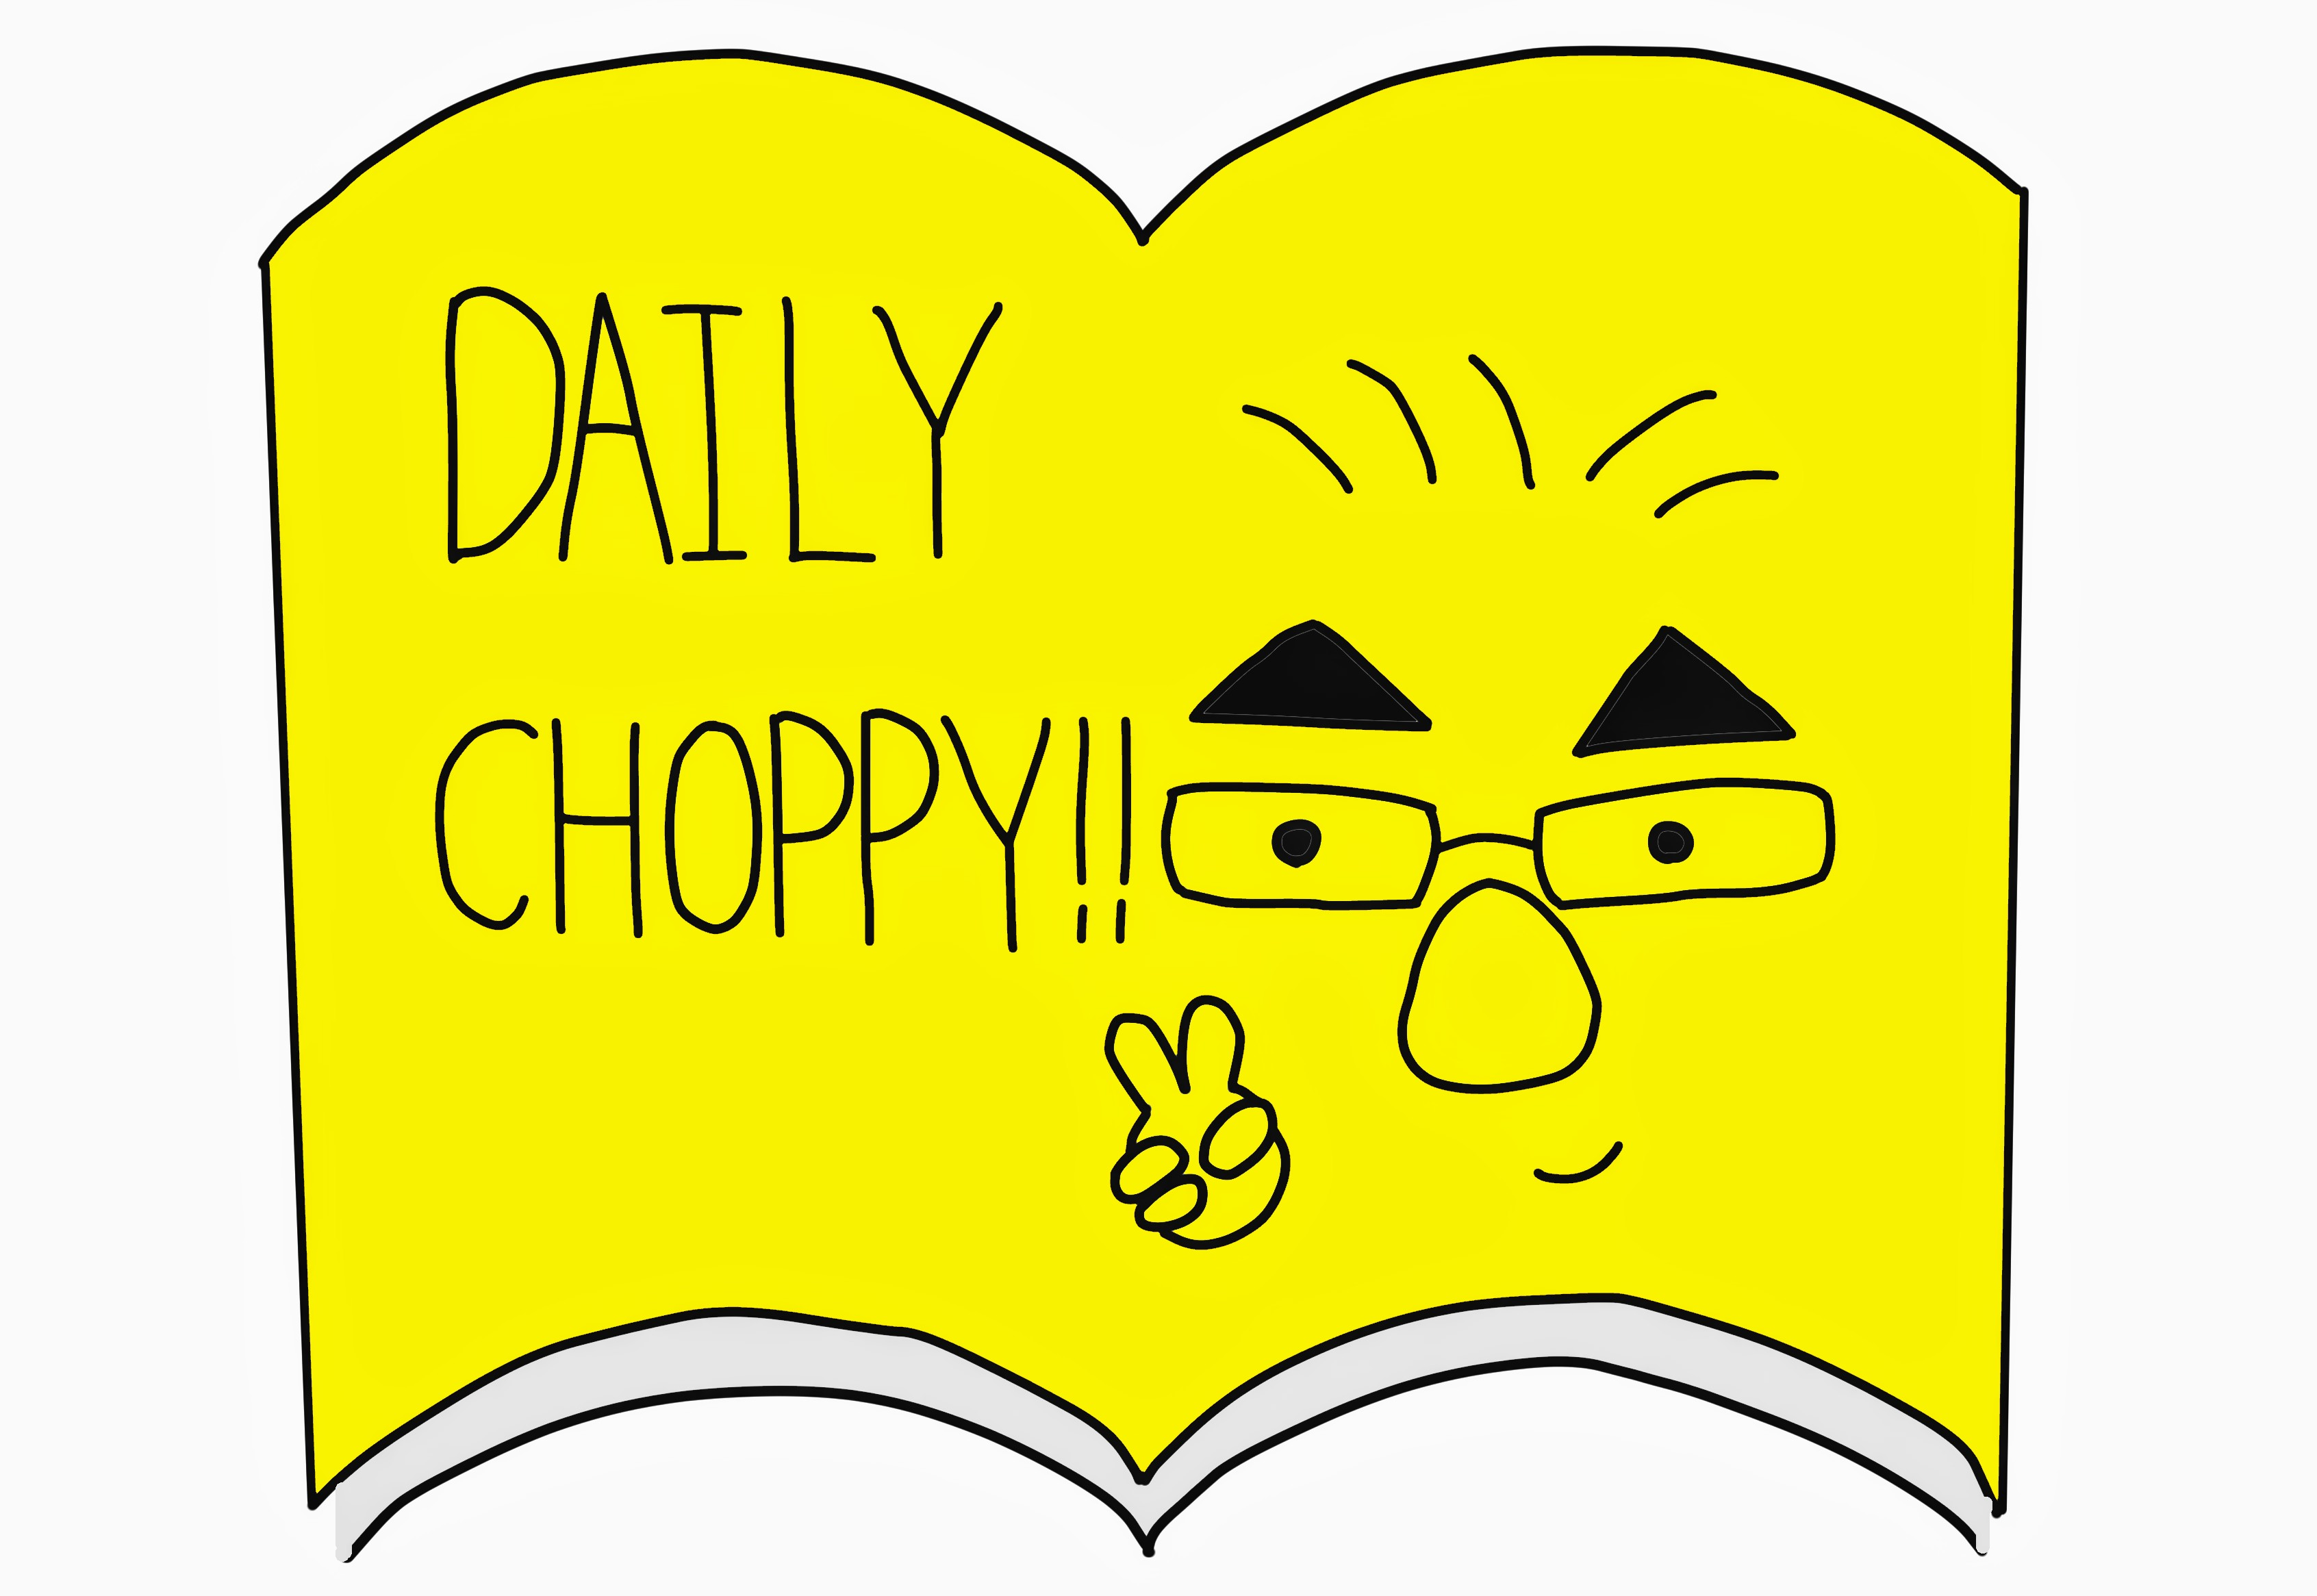 Daily Choppy!